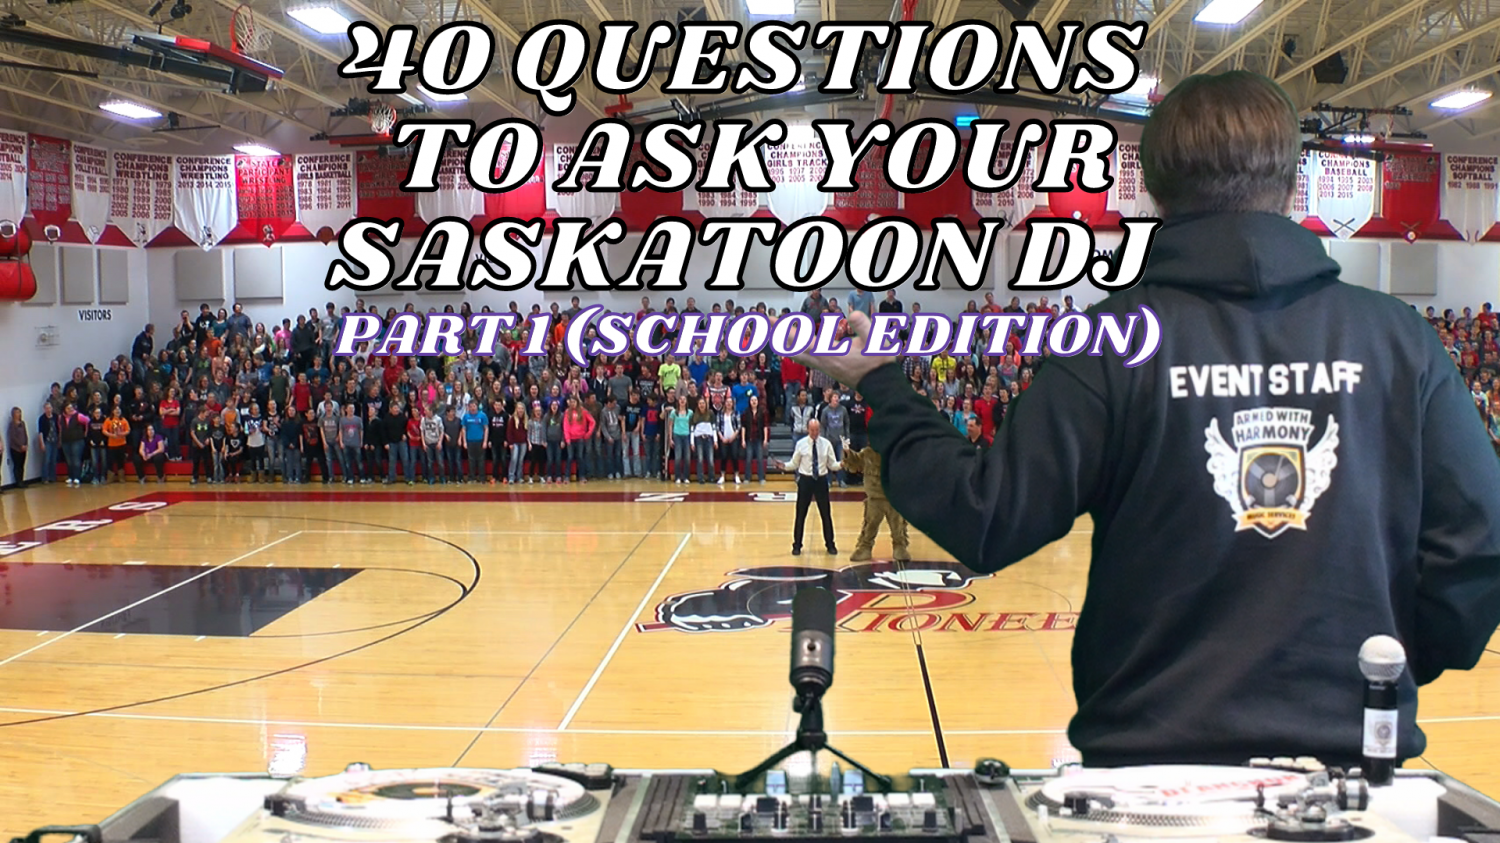 40 Questions To Ask Your Saskatoon School DJ Before You Hire Them (Part 1)